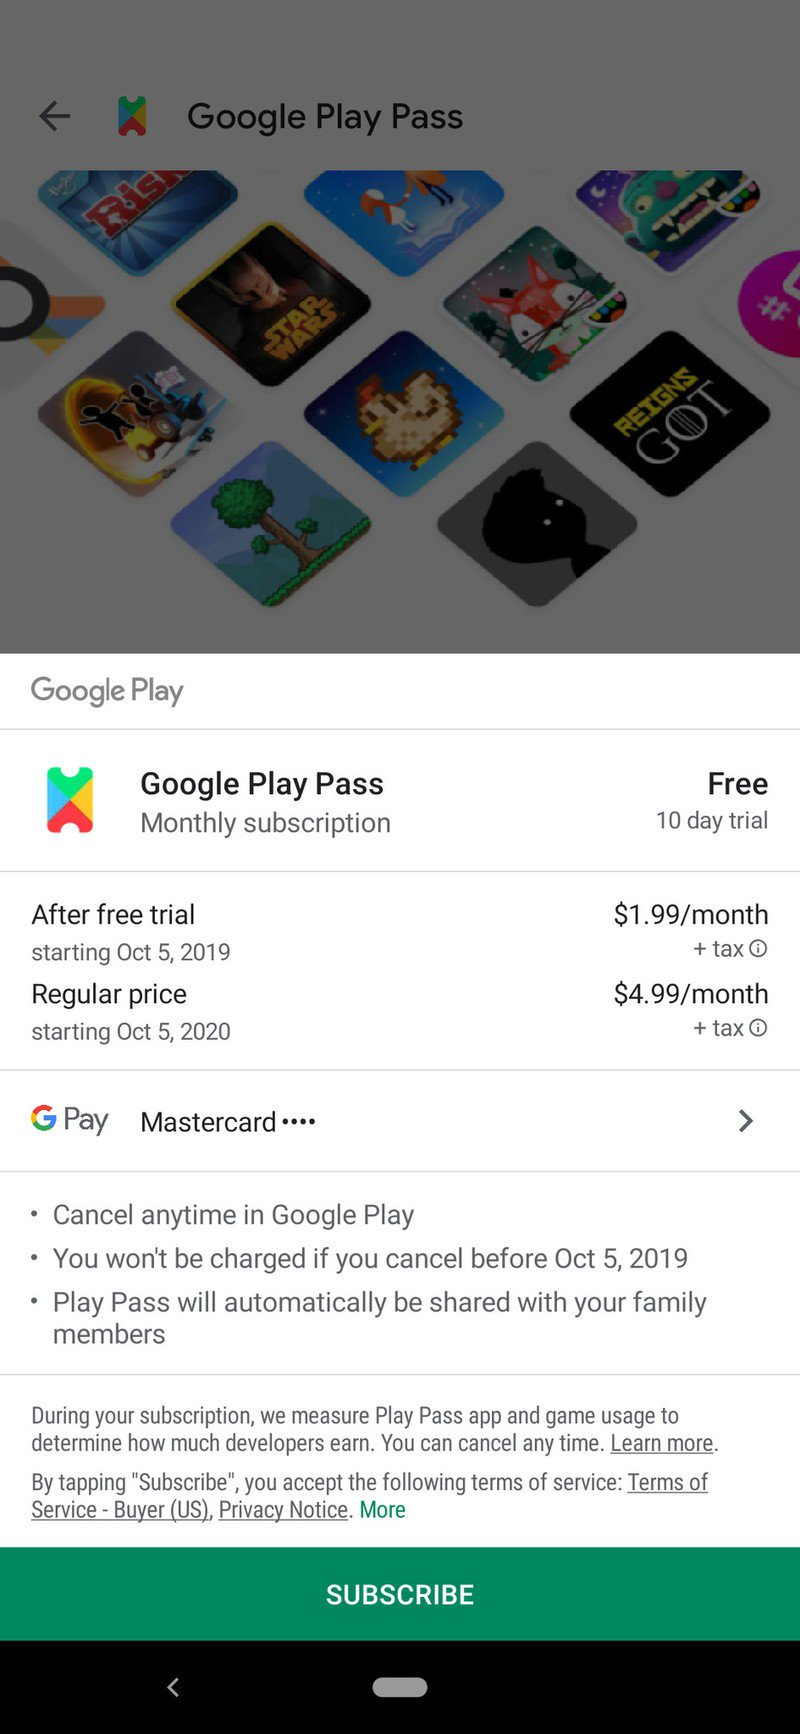 google-play-pass-how-to-sign-up-4.jpg?it